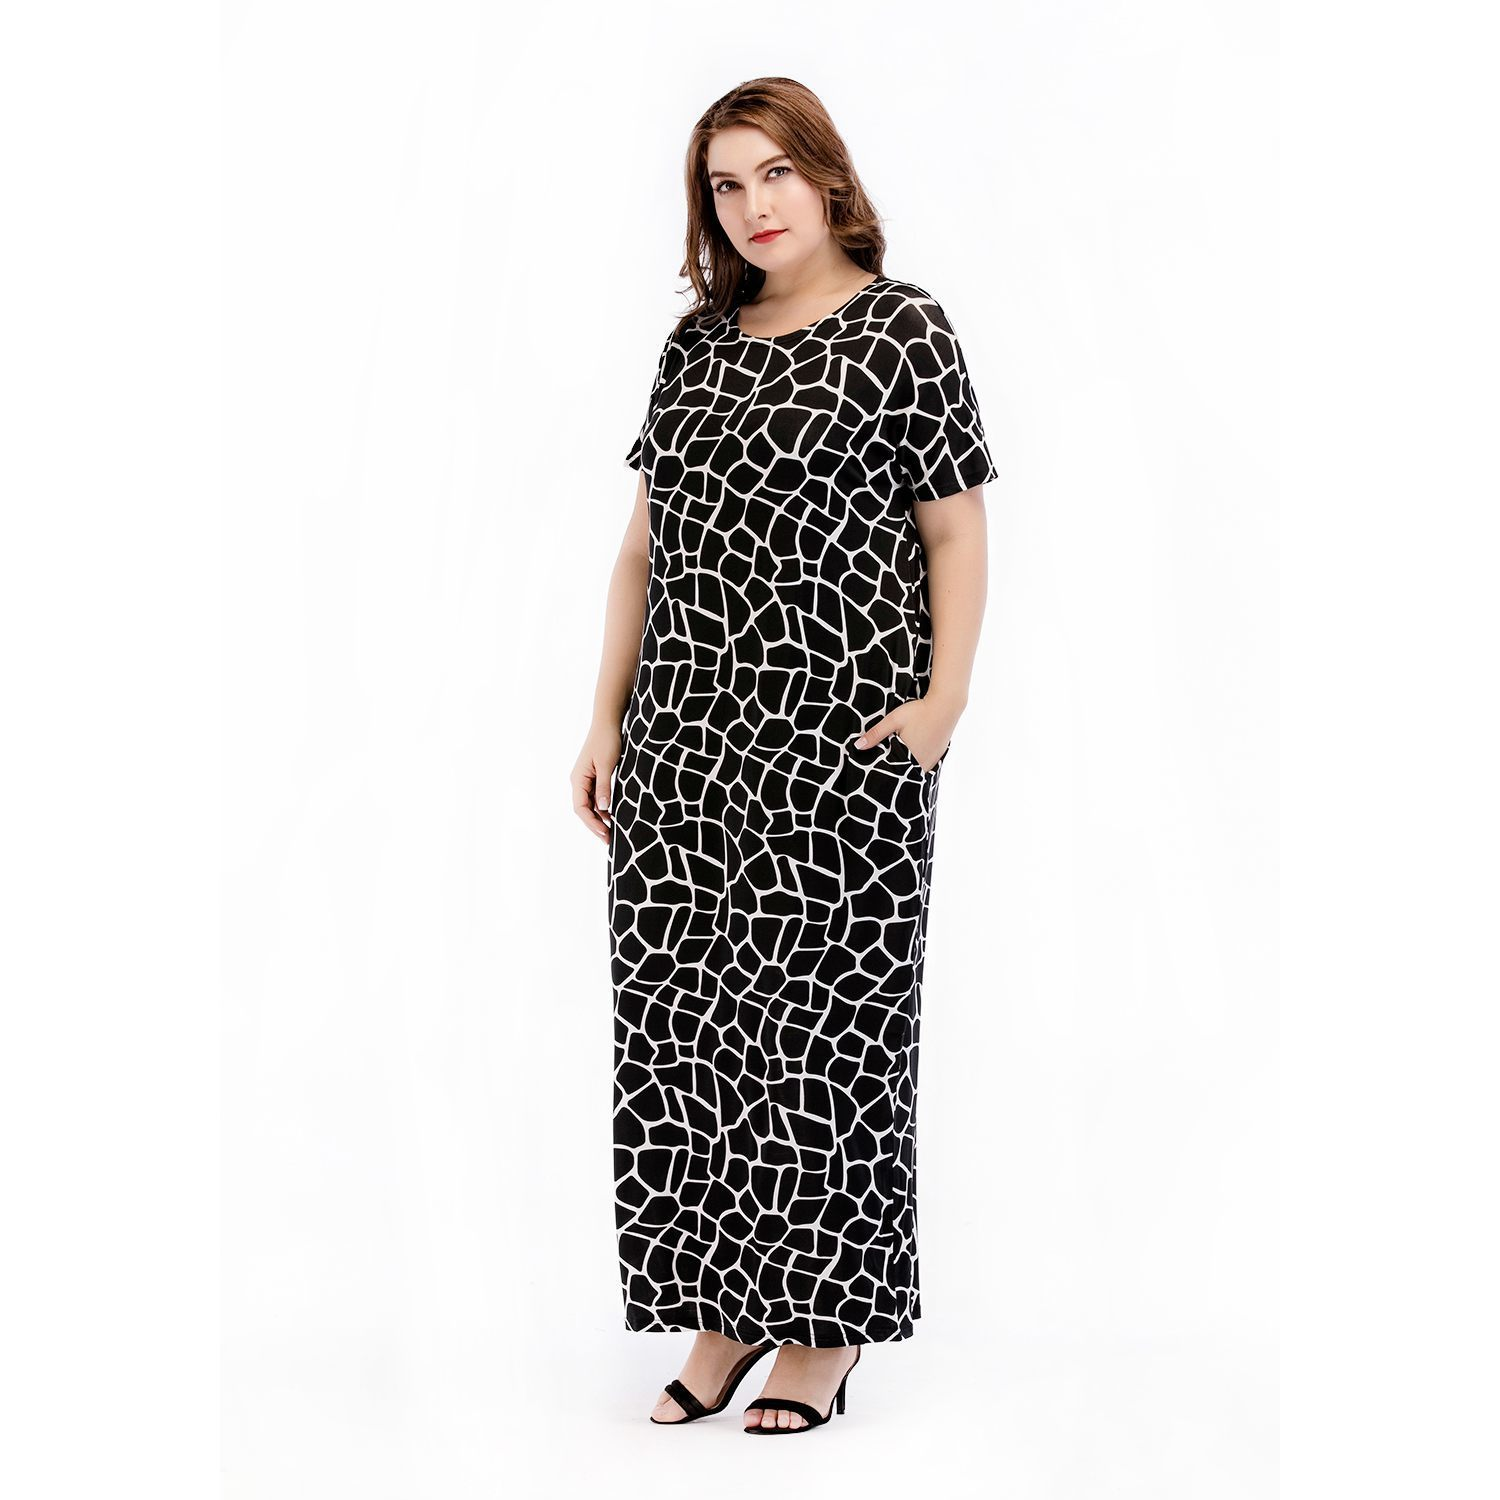 New European And American Style Knit Large Size Women's Dress Arabian Loose Robe Dress drop shipping designer clothes